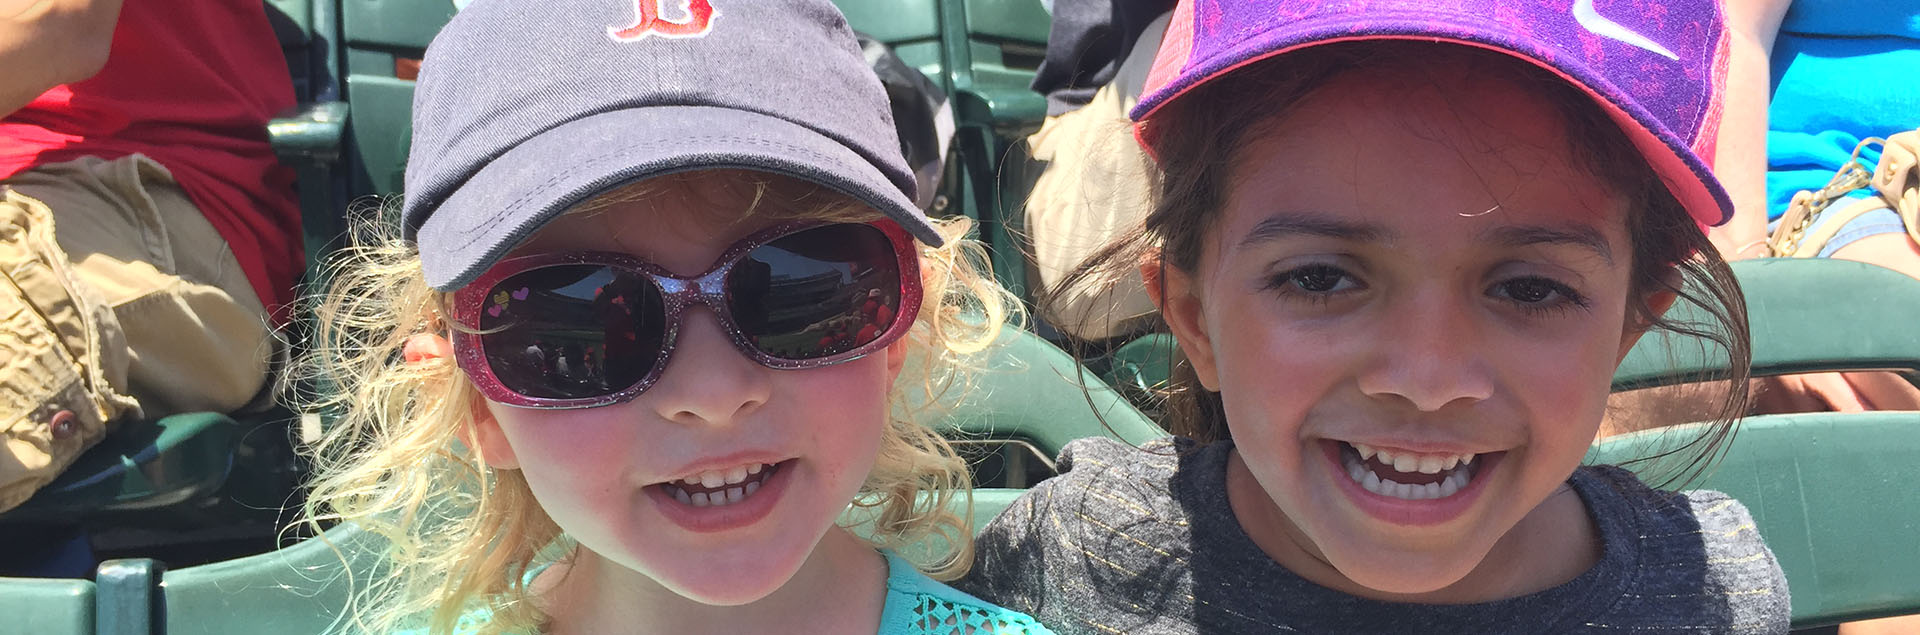 Little girls in stands at baseball game